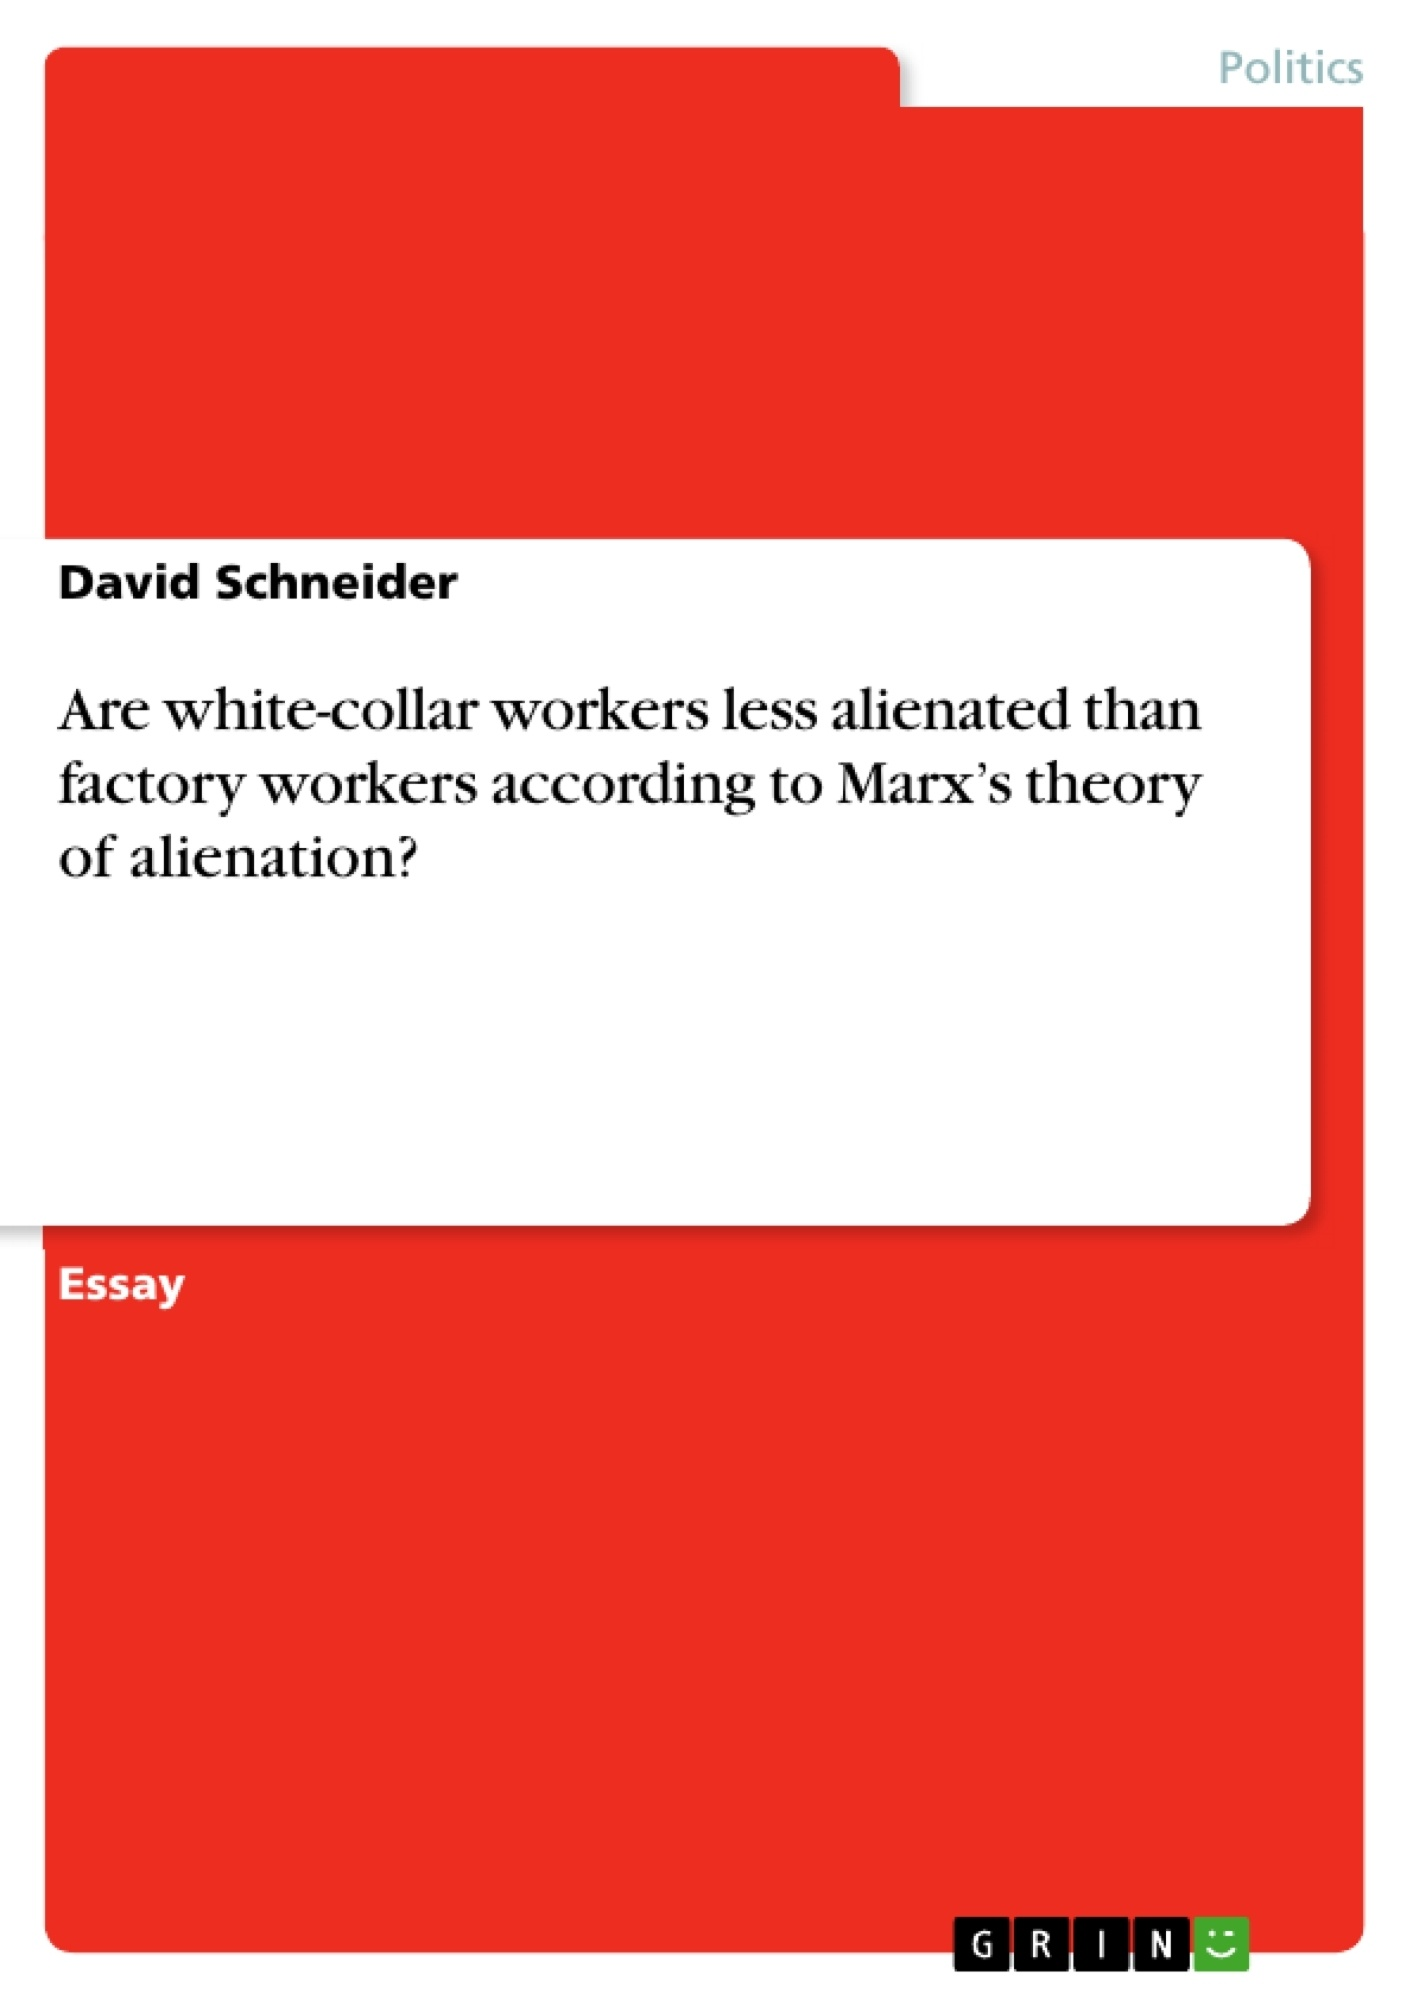 Title: Are white-collar workers less alienated than factory workers according to Marx's theory of alienation?